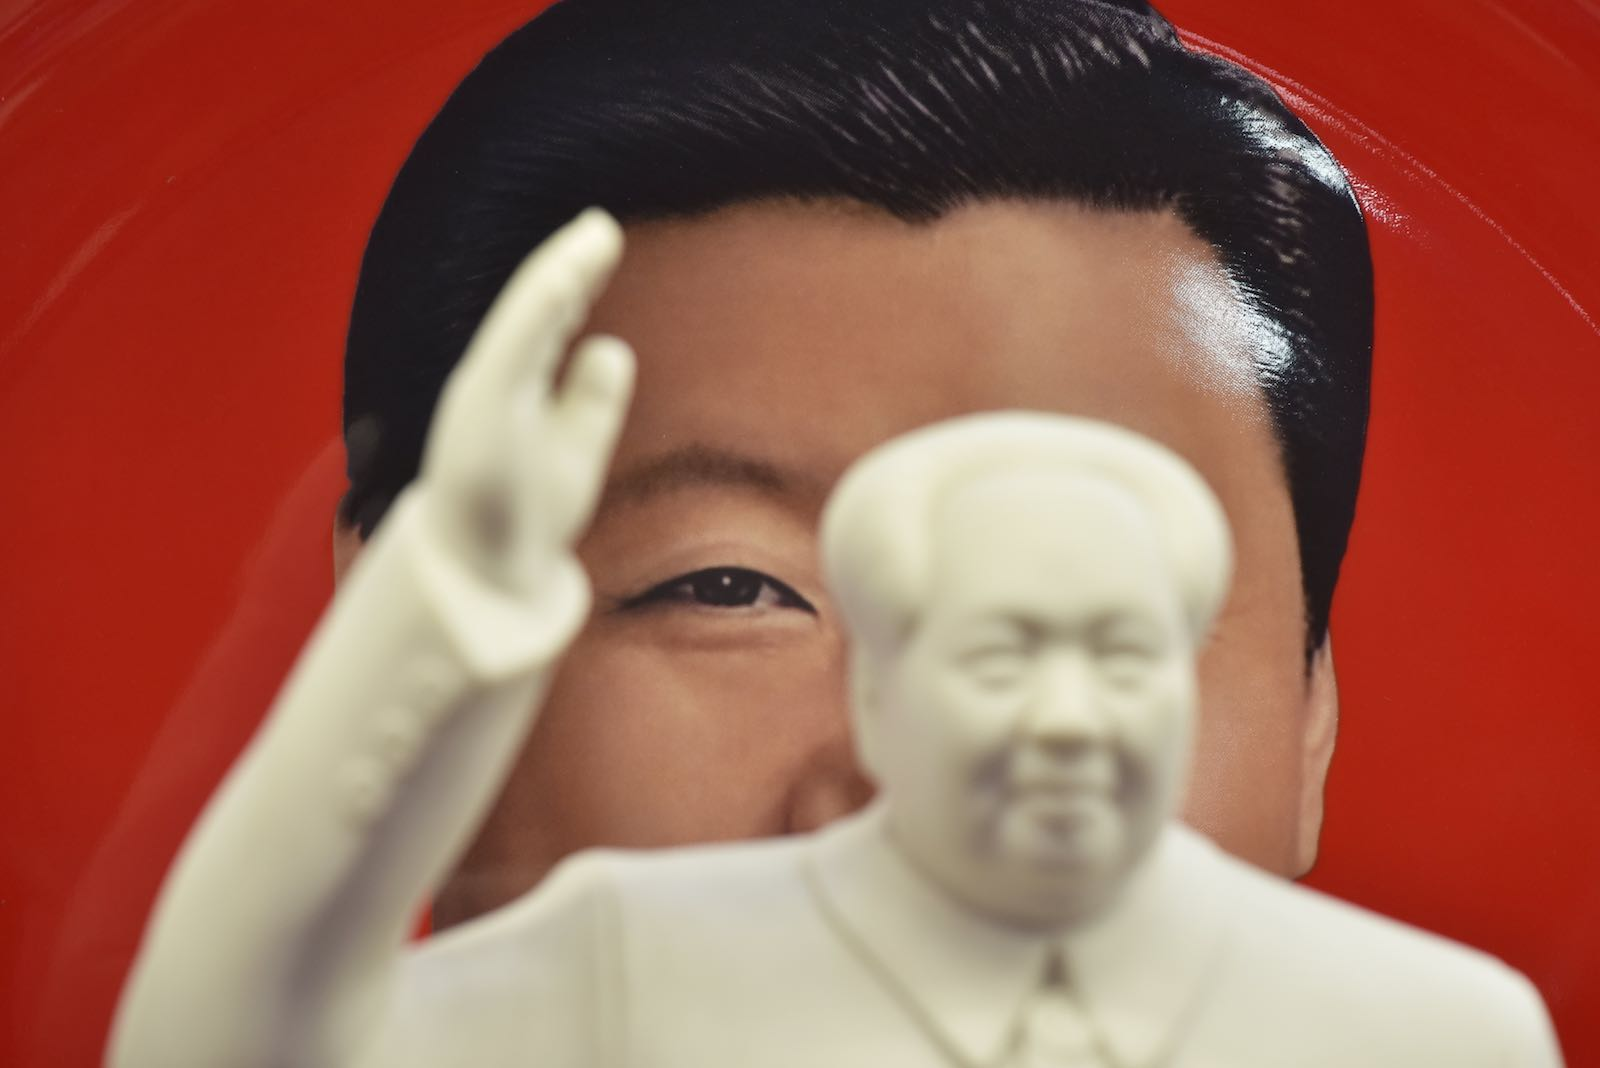 A decorative plate featuring an image of China's President Xi Jinping is seen behind a statue of late communist leader Mao Zedong at a souvenir store next to Tiananmen Square in Beijing (Greg Baker/AFP/Getty Images)